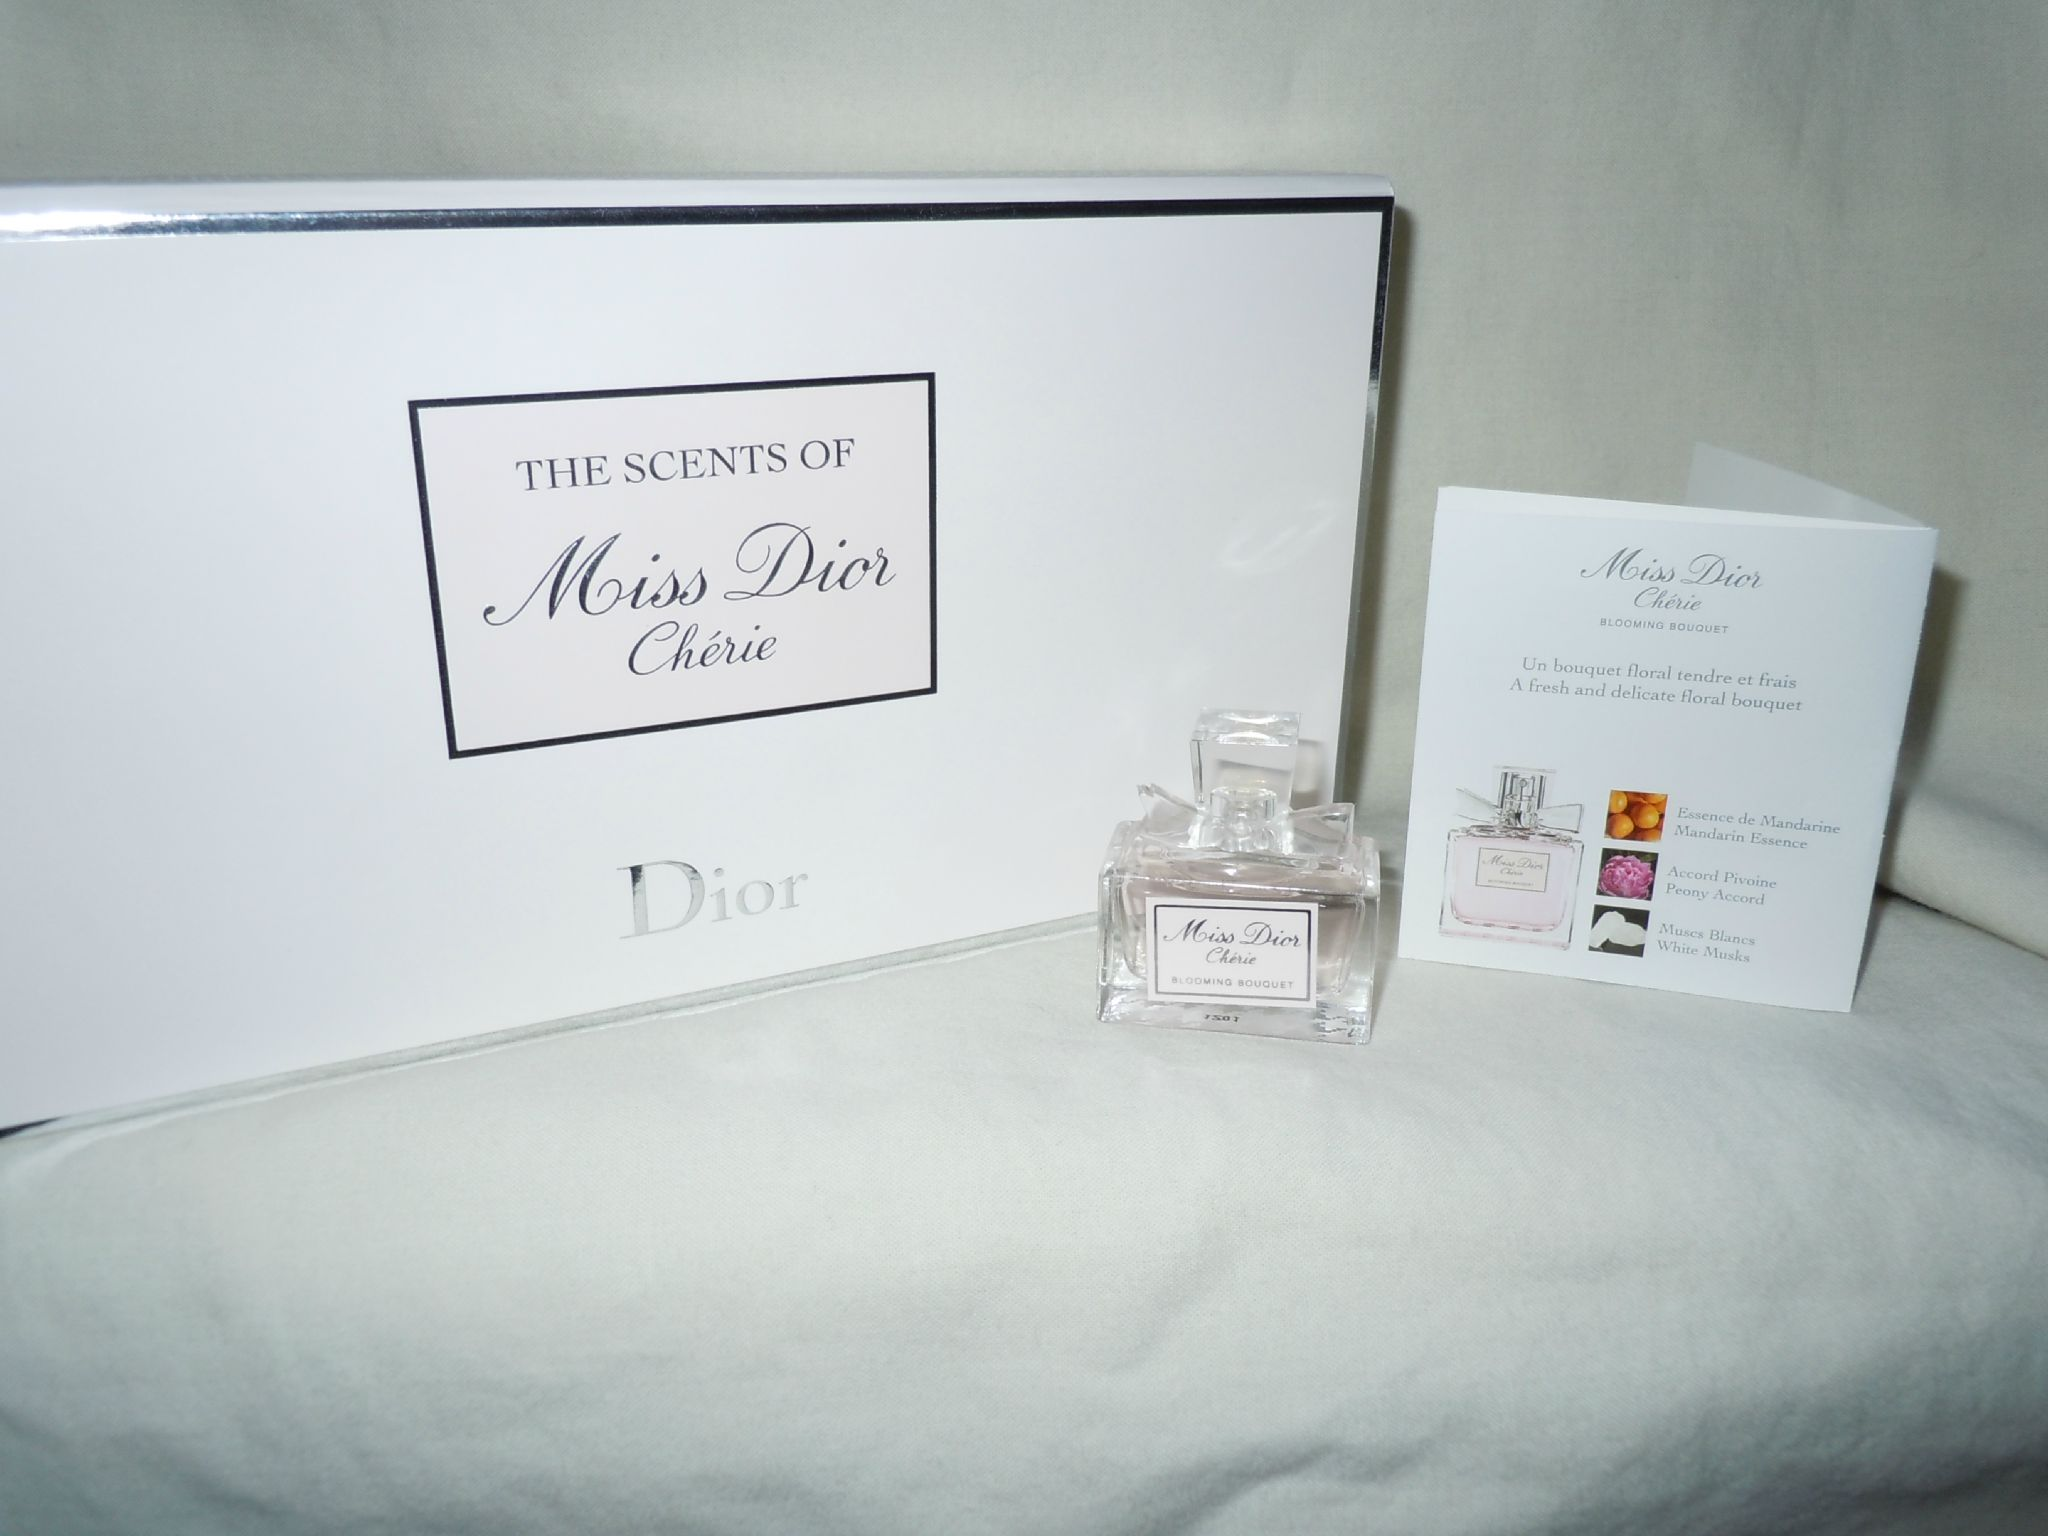 DIOR-MISSDIORCHERIEBLOOMINGBOUQUET-THESCENTSOFMISSDIORCHERIE